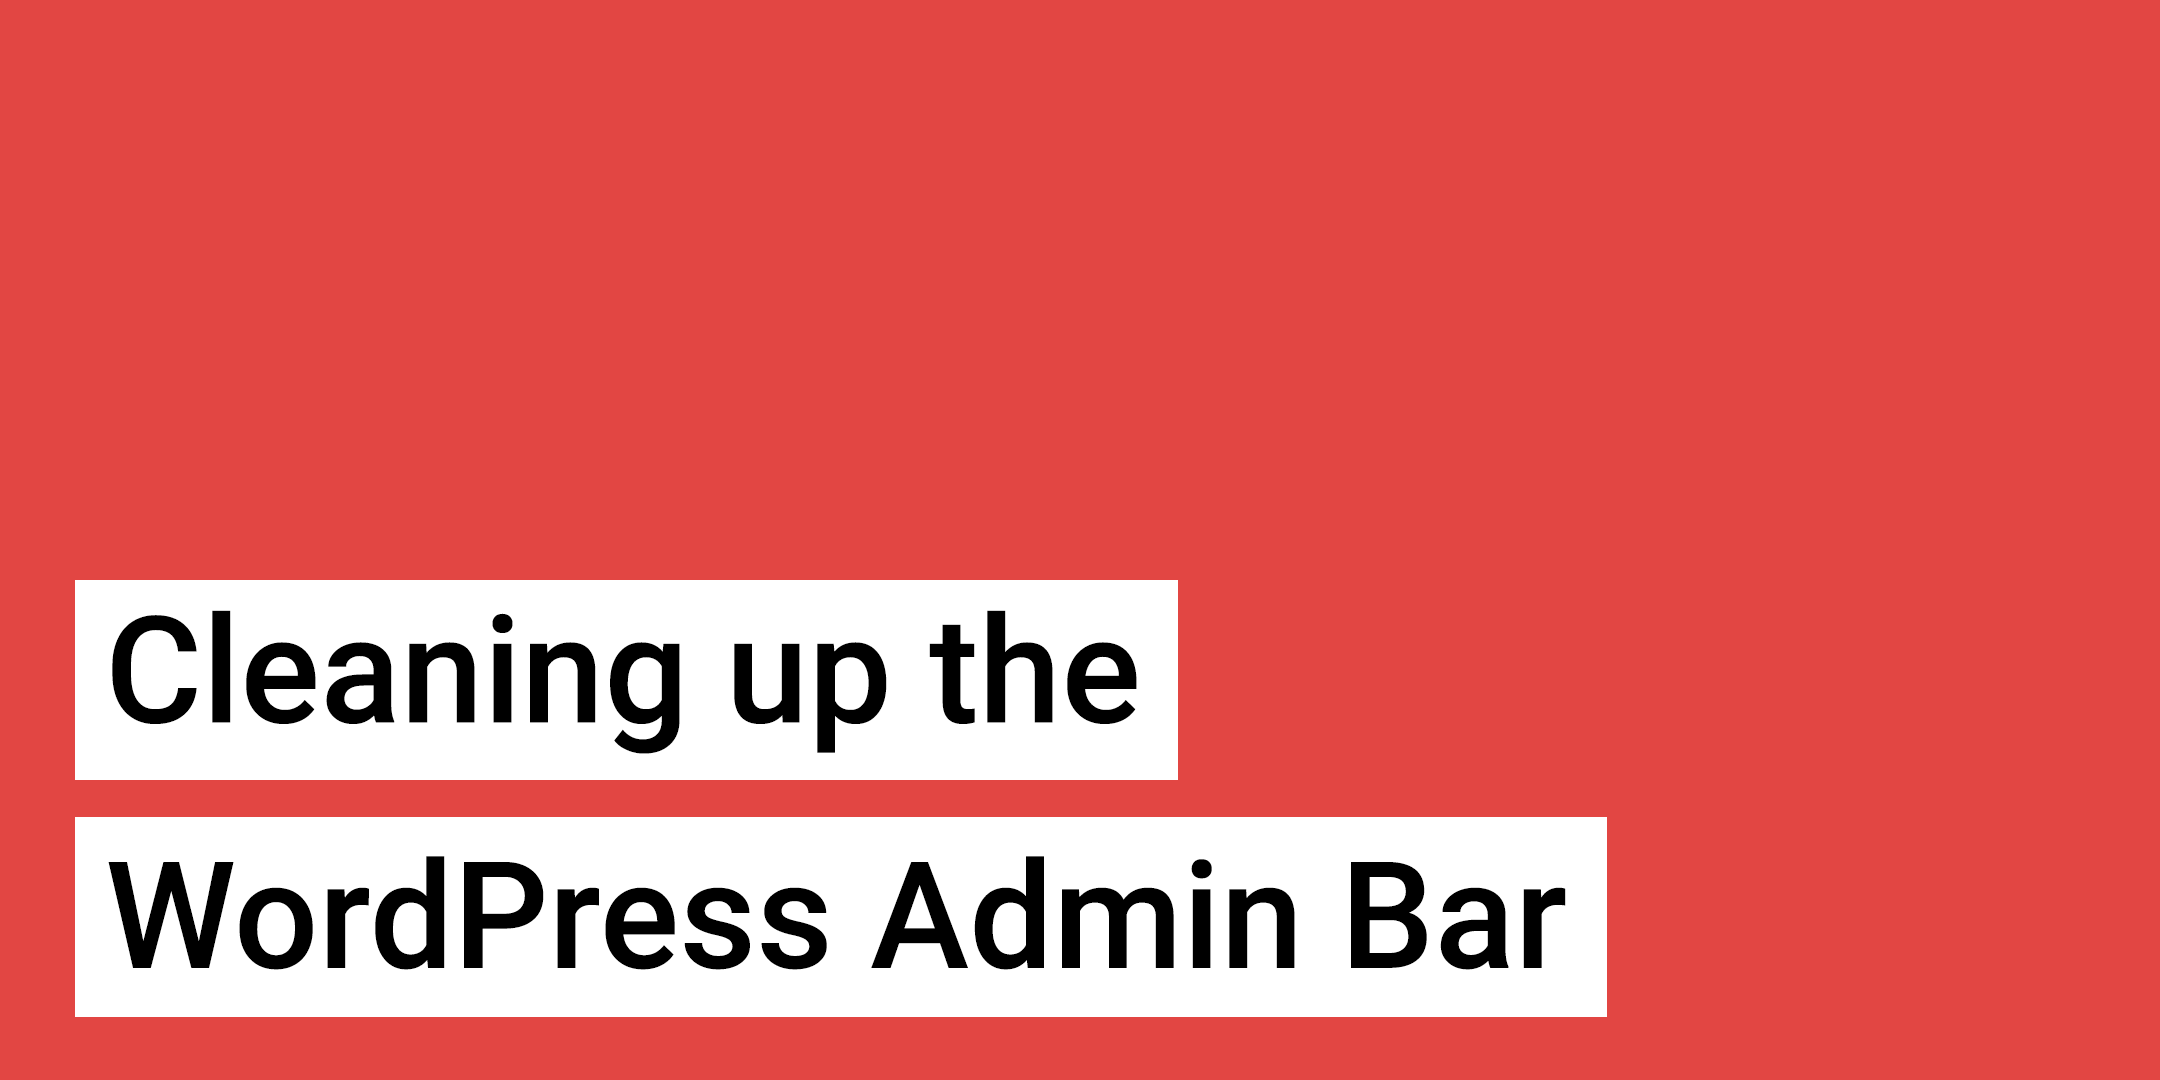 Cleaning up the WordPress Admin Bar